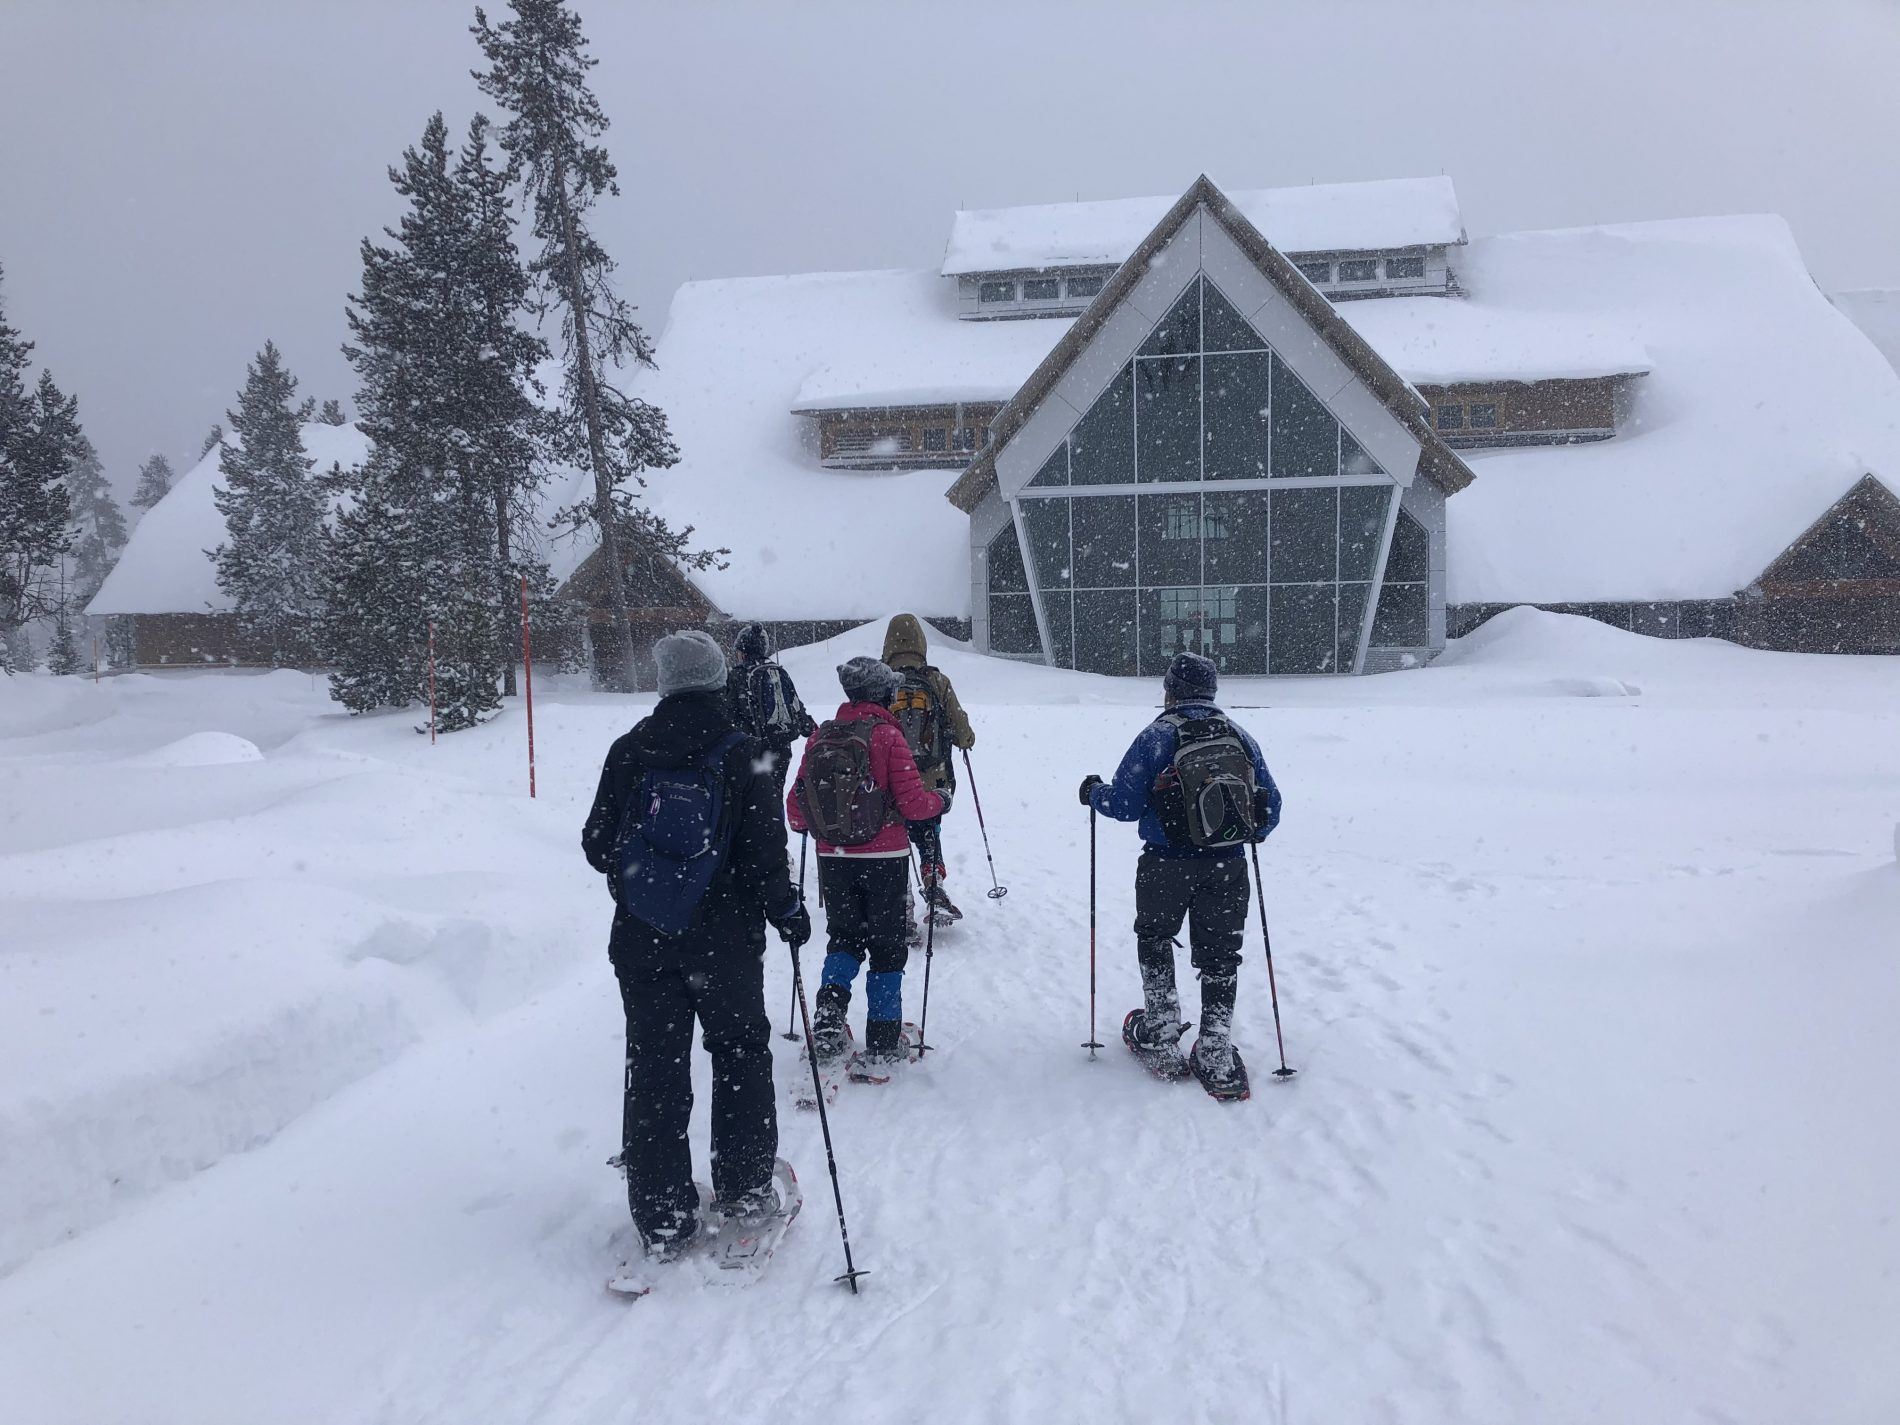 Winter scene at the Old Faithful Visitor Center in Yellowstone National Park